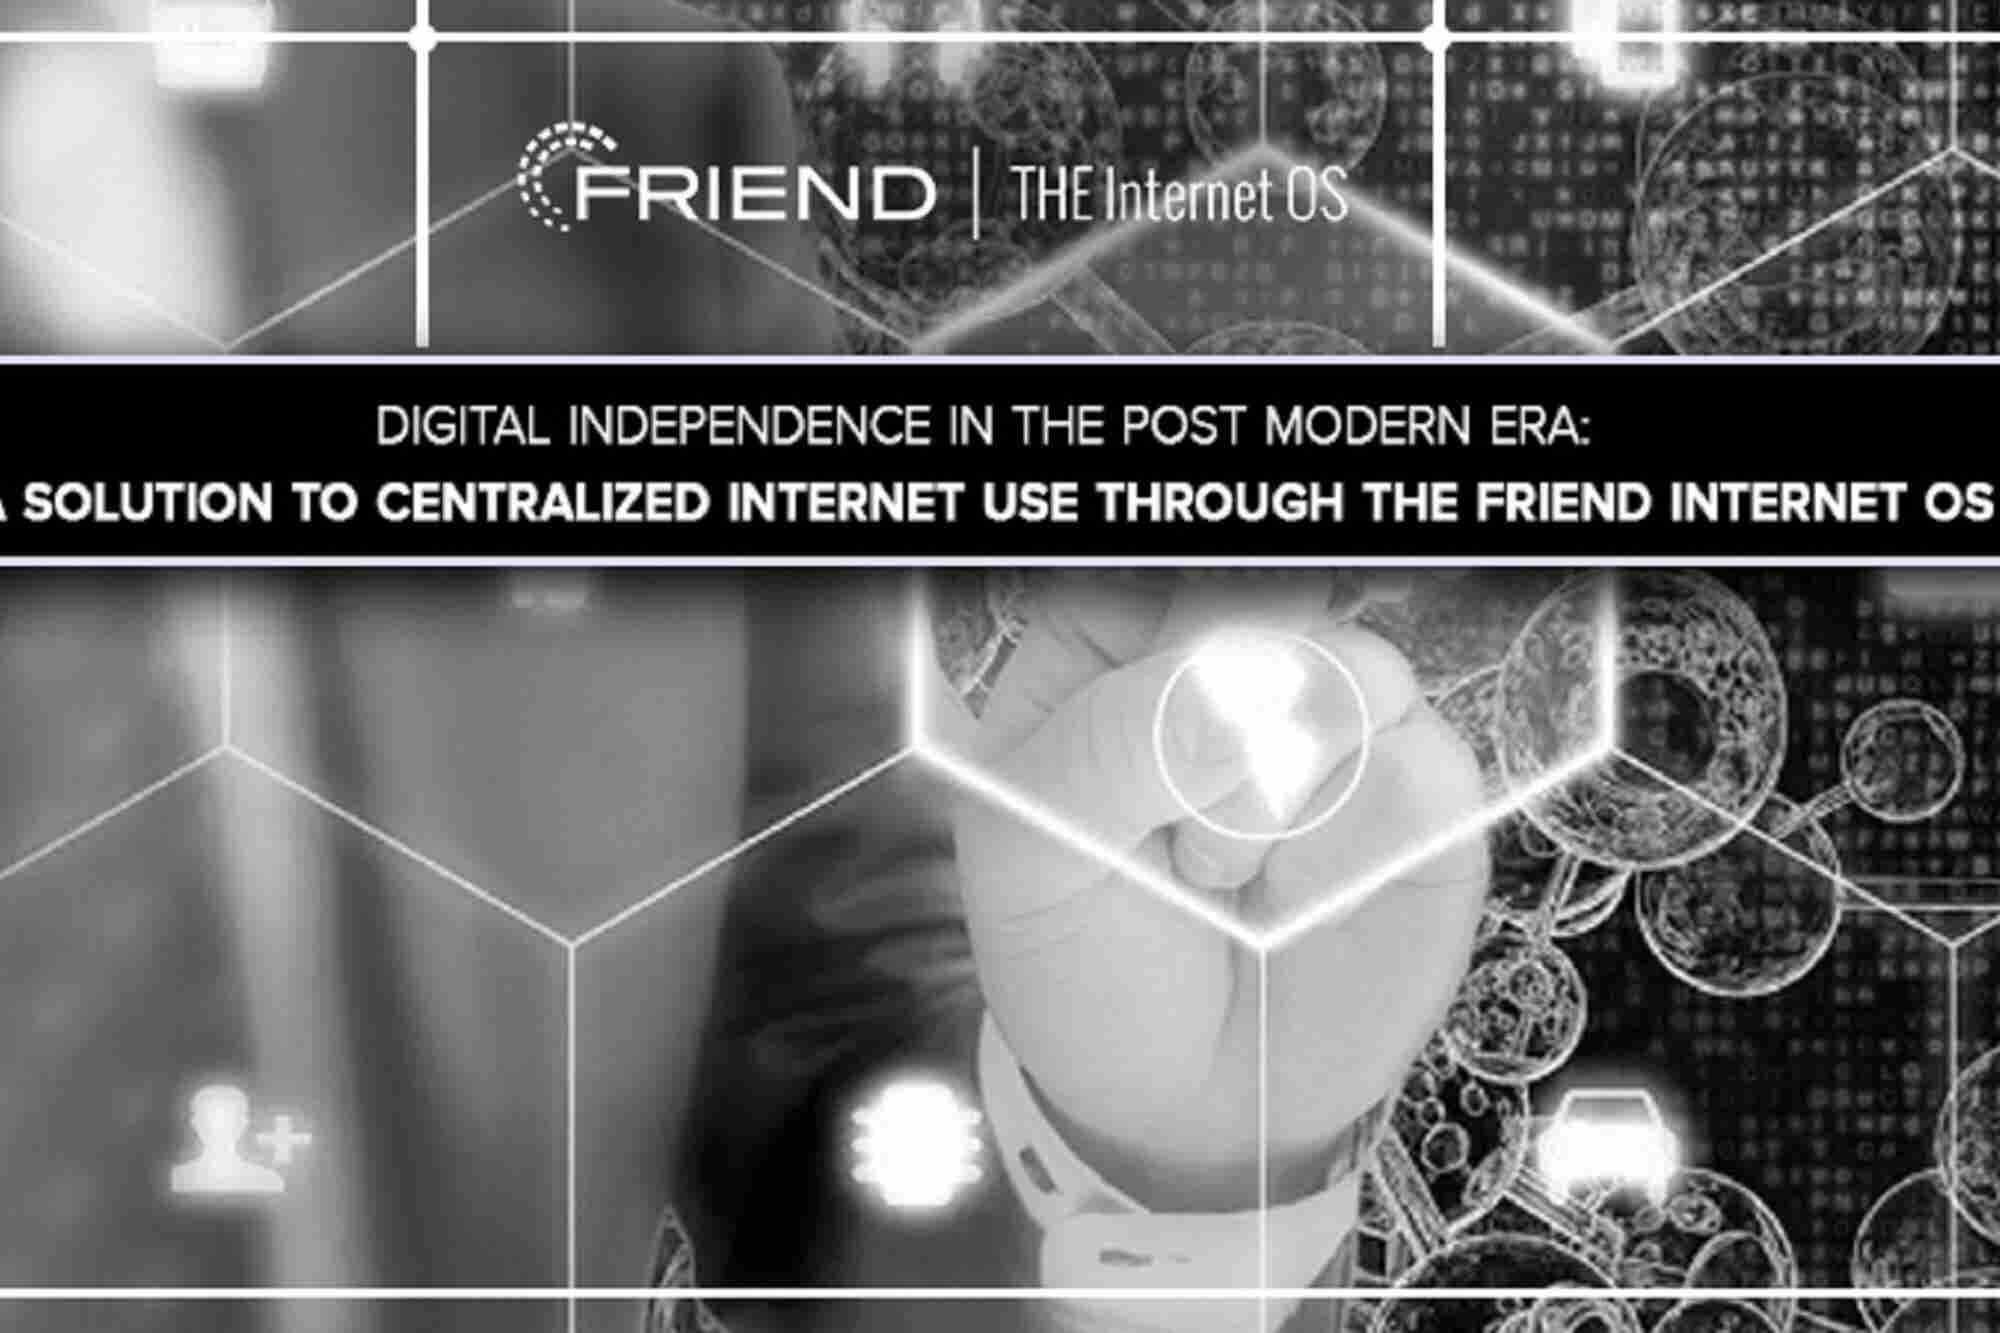 Digital Independence in the Post Modern Era: A Solution to Centralized Internet Use through The Friend Internet OS